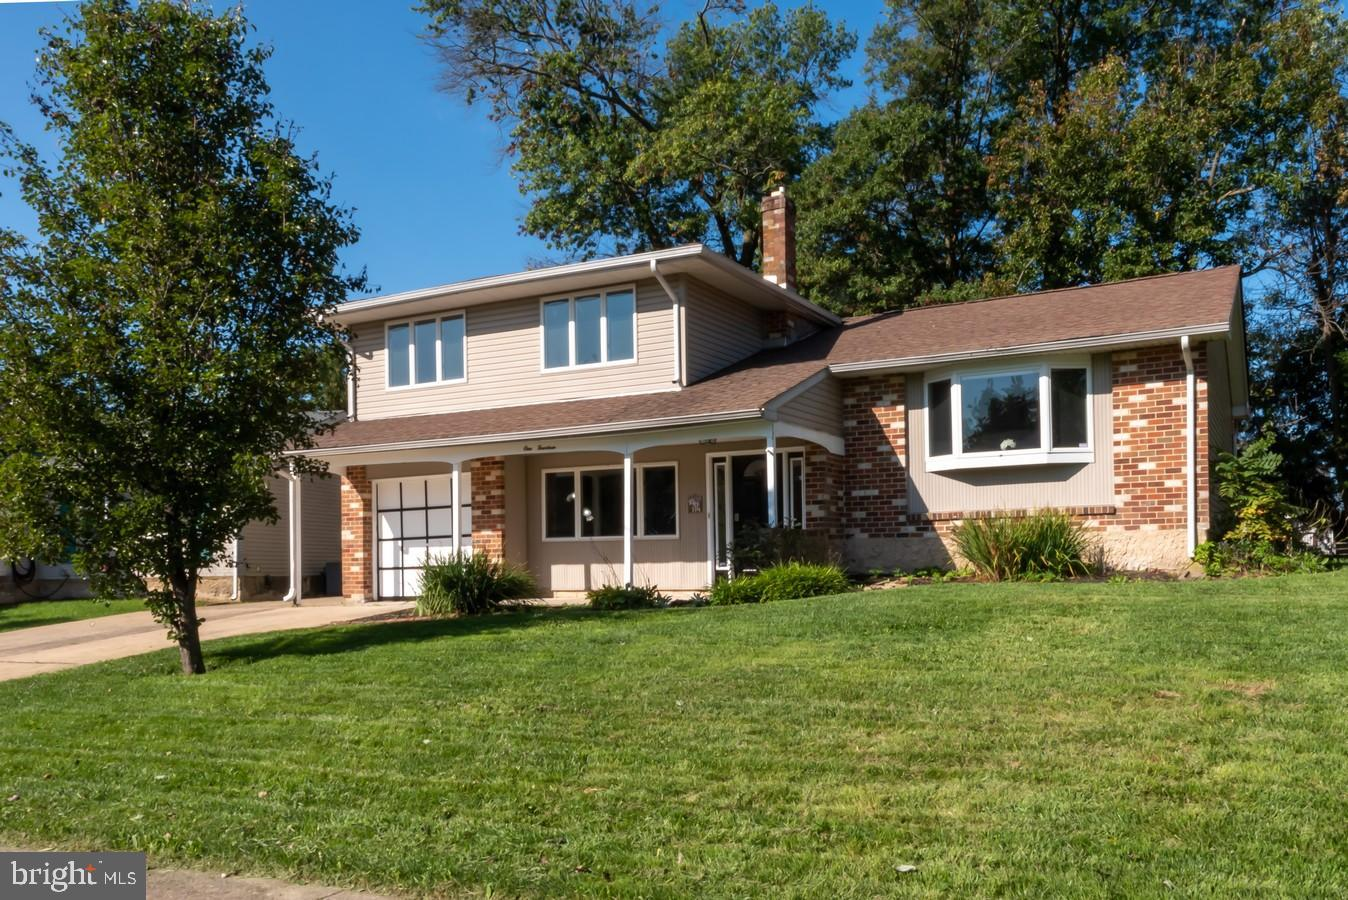 114 Halloween Run, This 4 bedroom 2 full bath home is a must see.  Set on a cul-de-sac home site and